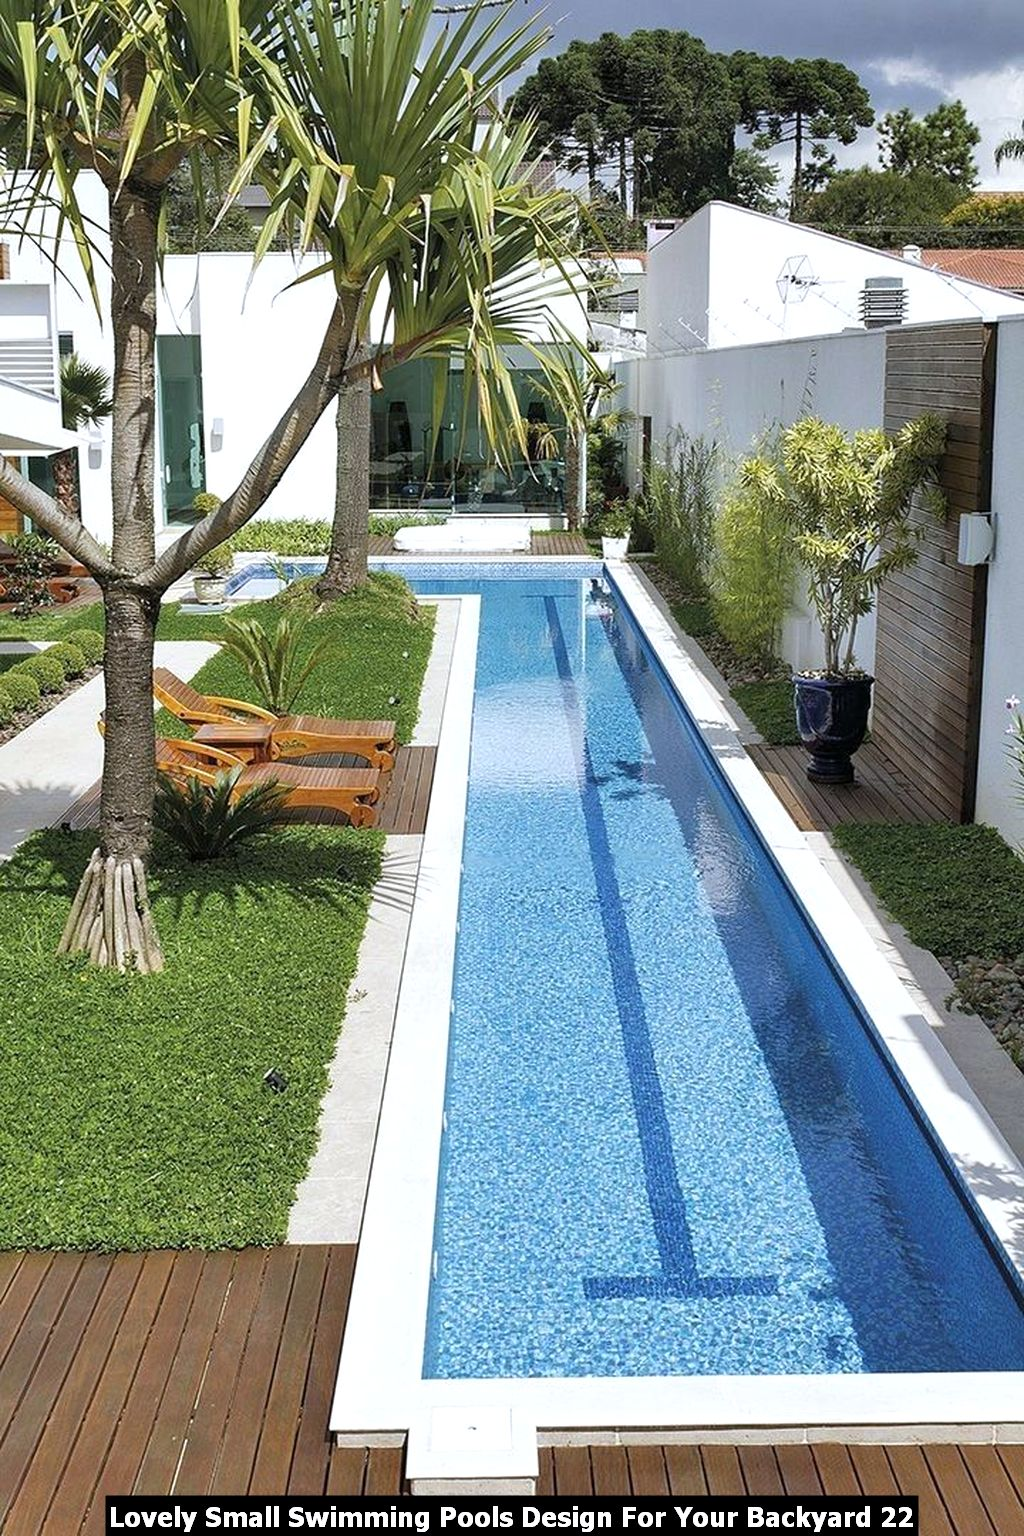 Lovely Small Swimming Pools Design For Your Backyard 22